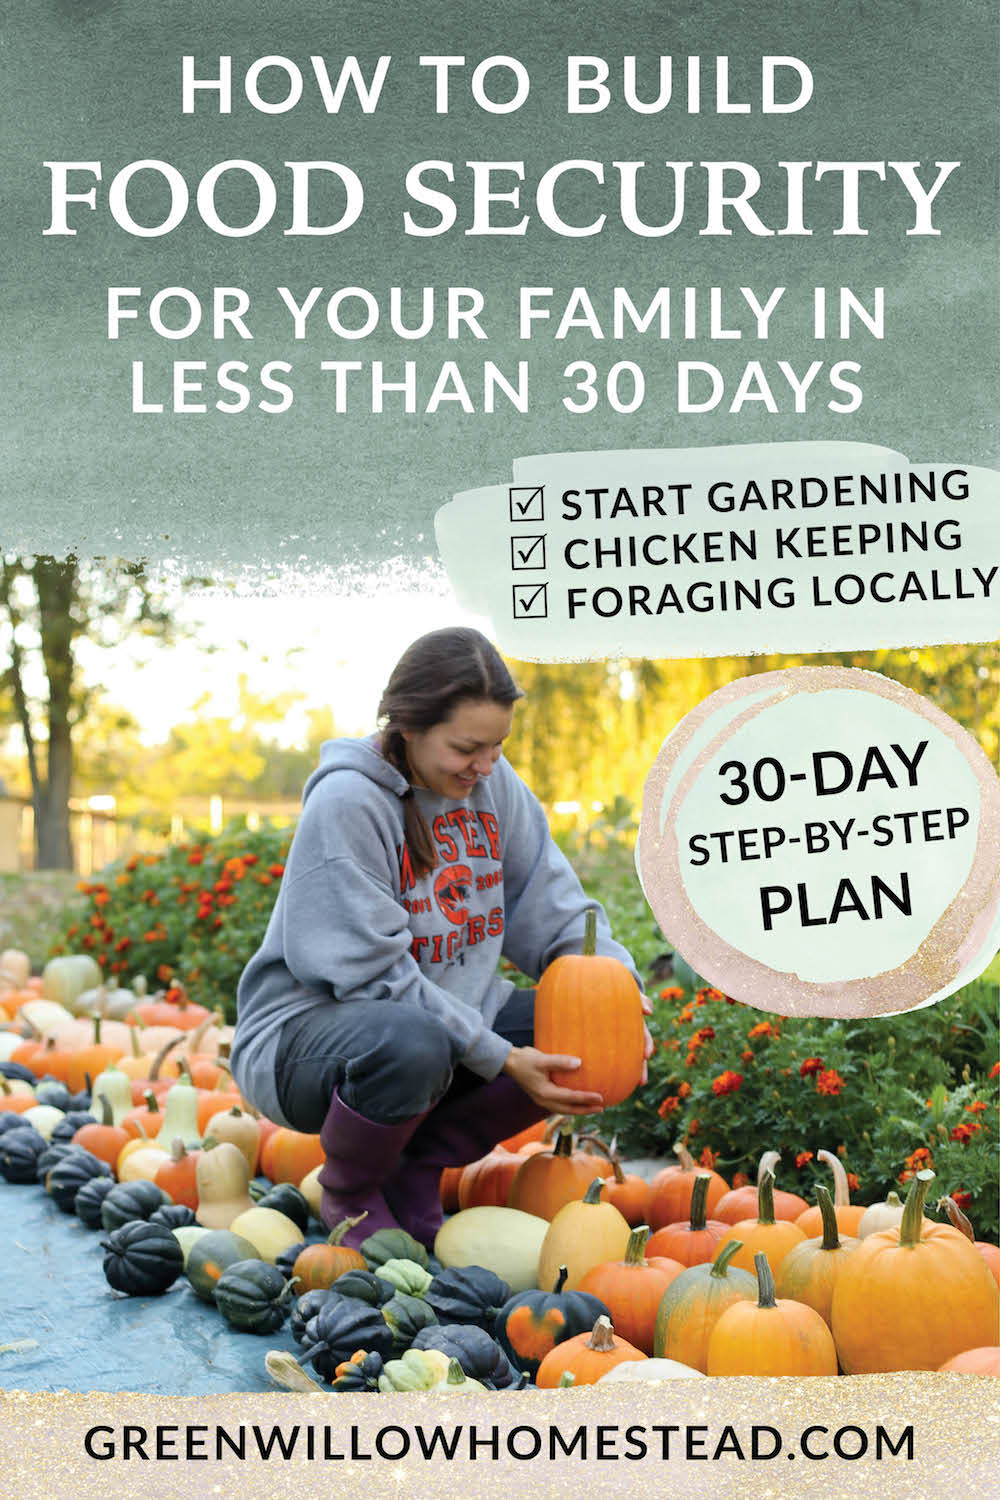 How to build food security for your family in less than 30 days